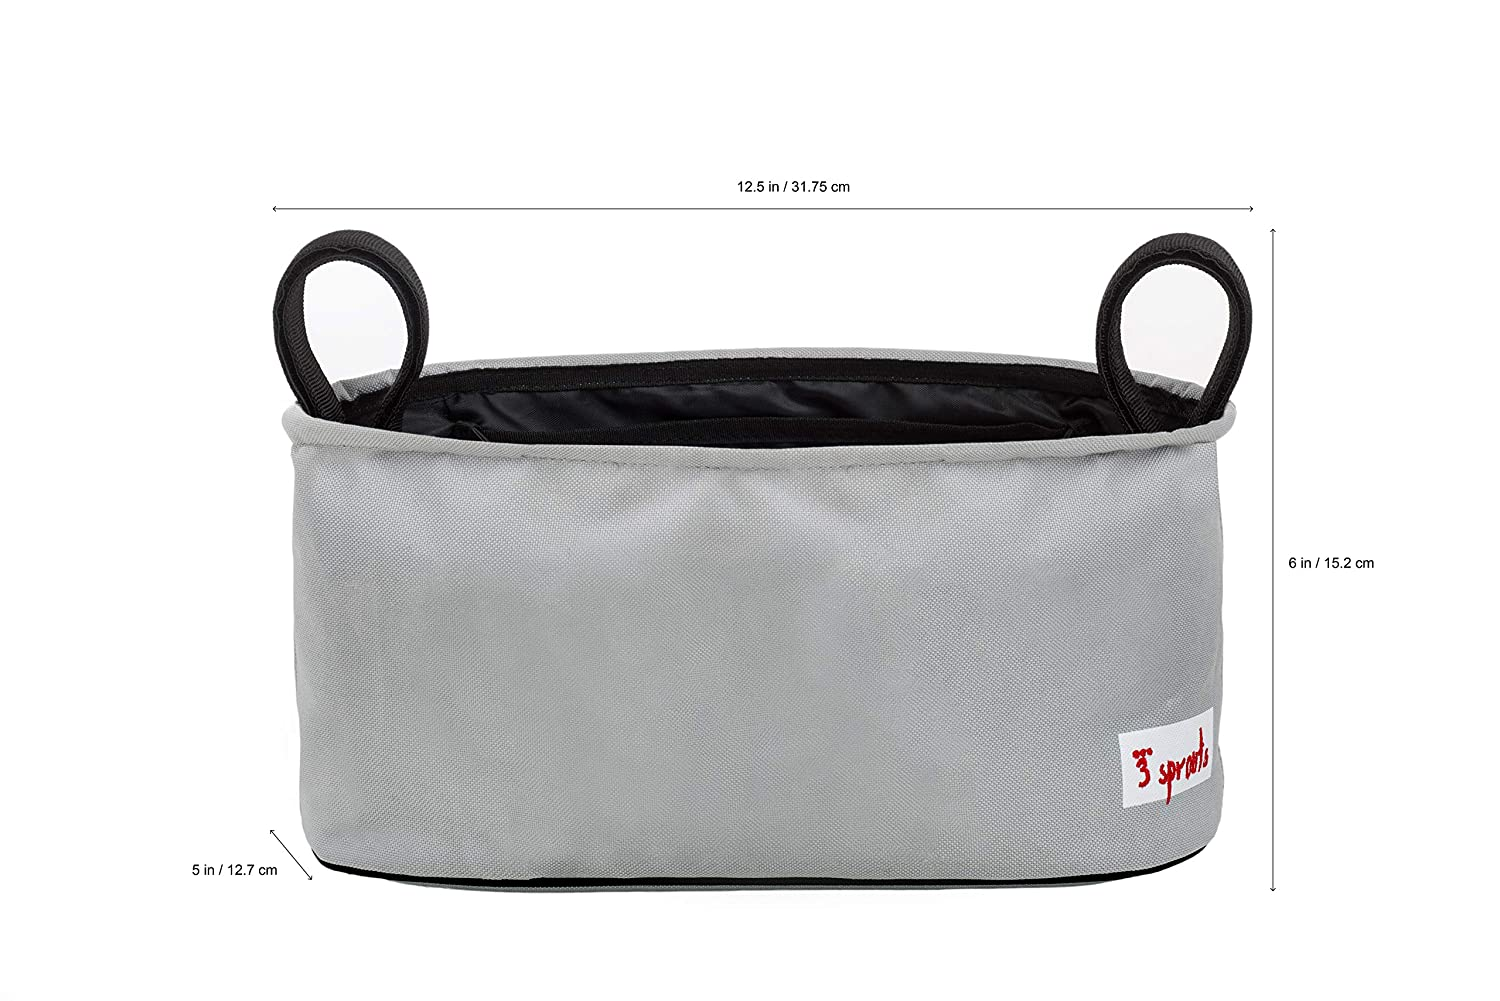 9d54de637fa06 Amazon.com : 3 Sprouts Universal Stroller Organizer - Baby Jogger Caddy  with Cup Holder : Baby Stroller Attachable Organizers : Baby